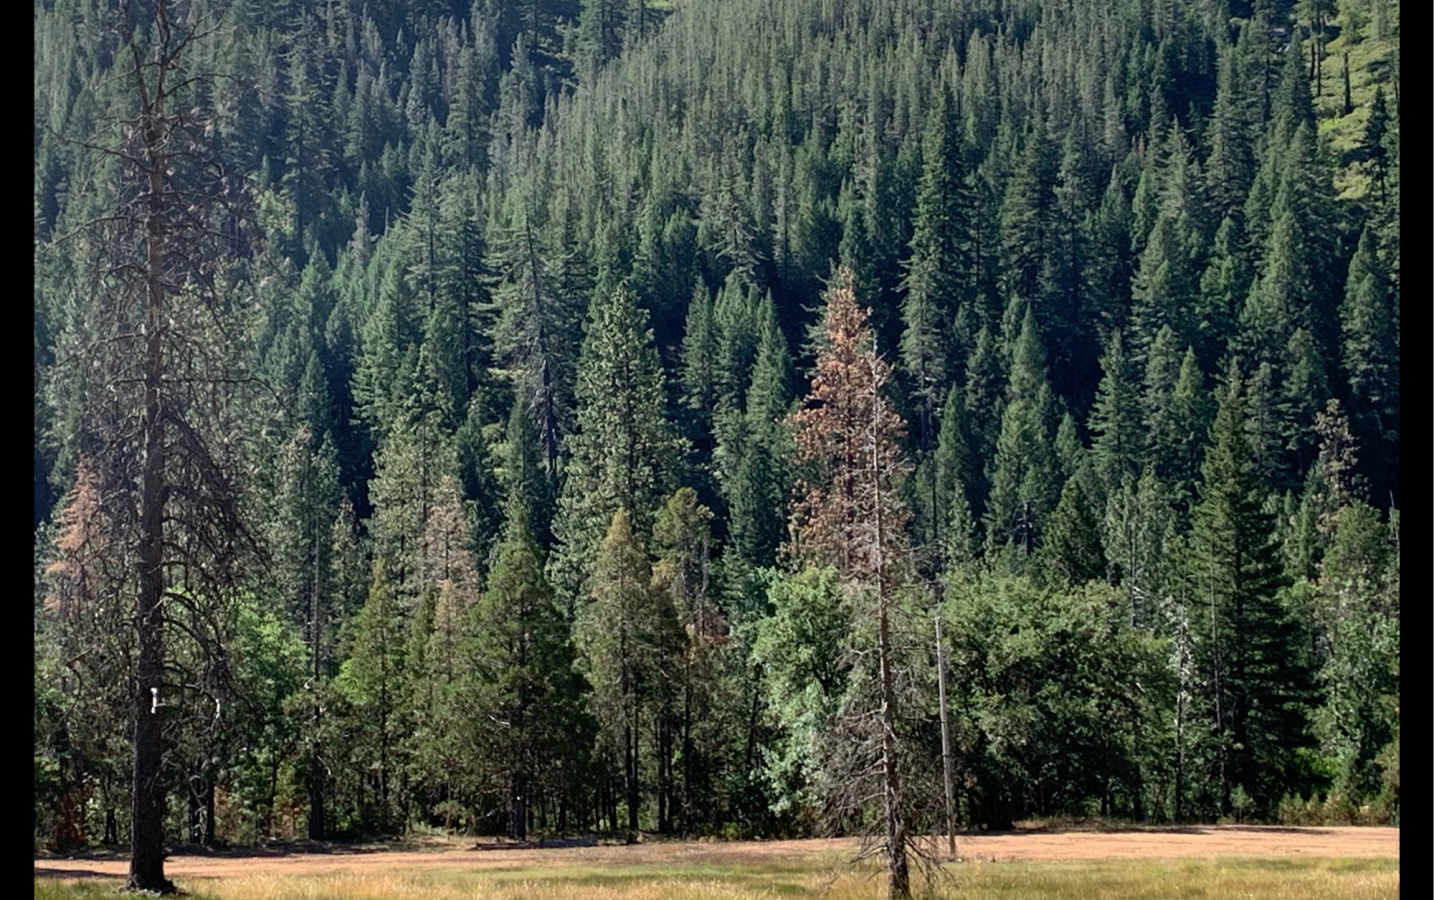 Enjoying a time out at Ripple Creek in the Trinity Alps. Trees, flowers, mountains, meadows, flowing water, and the best porch for reading. --Barbara